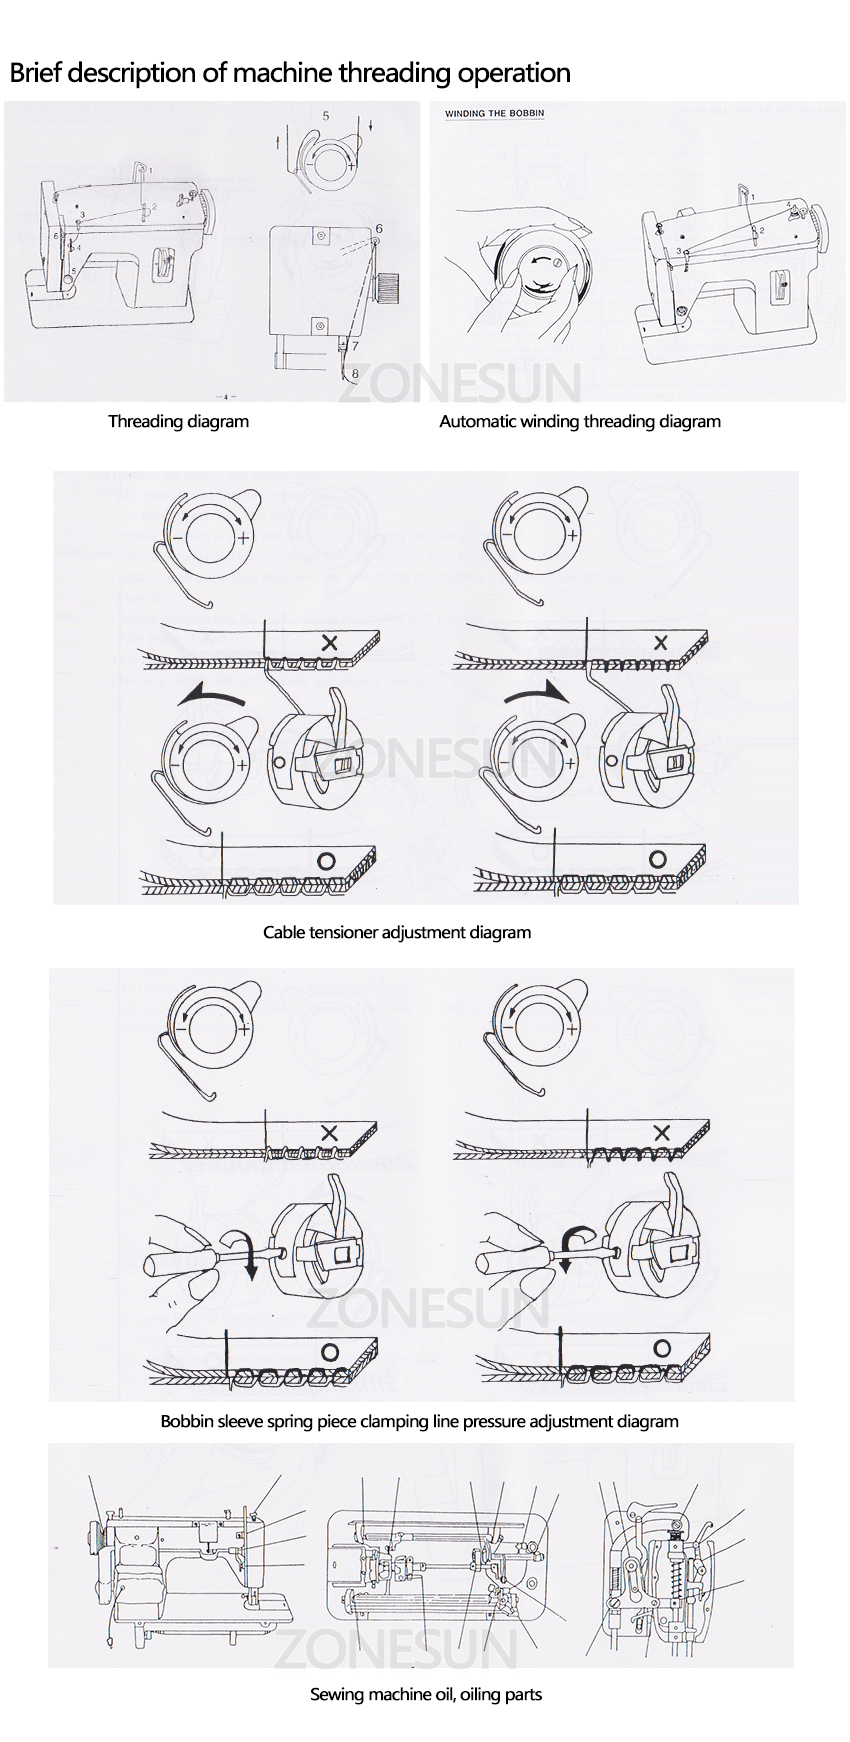 Zonesun 106 Rp Household Sewing Machine Fur Leather Fell Clothes Diagram 09